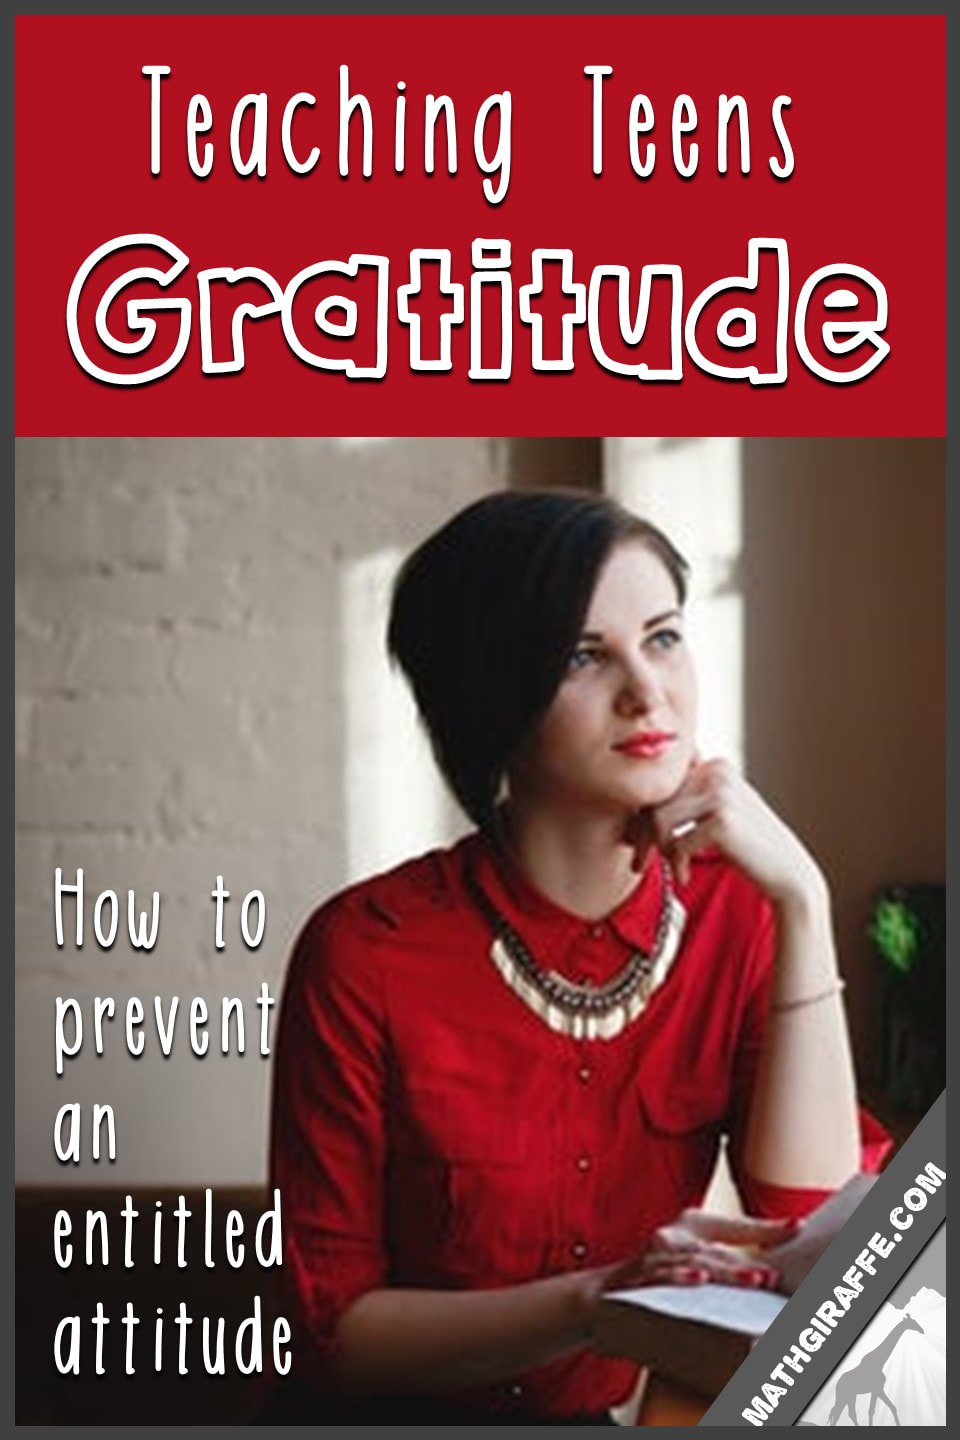 teaching gratitude - attitudes & entitlement in the classroom